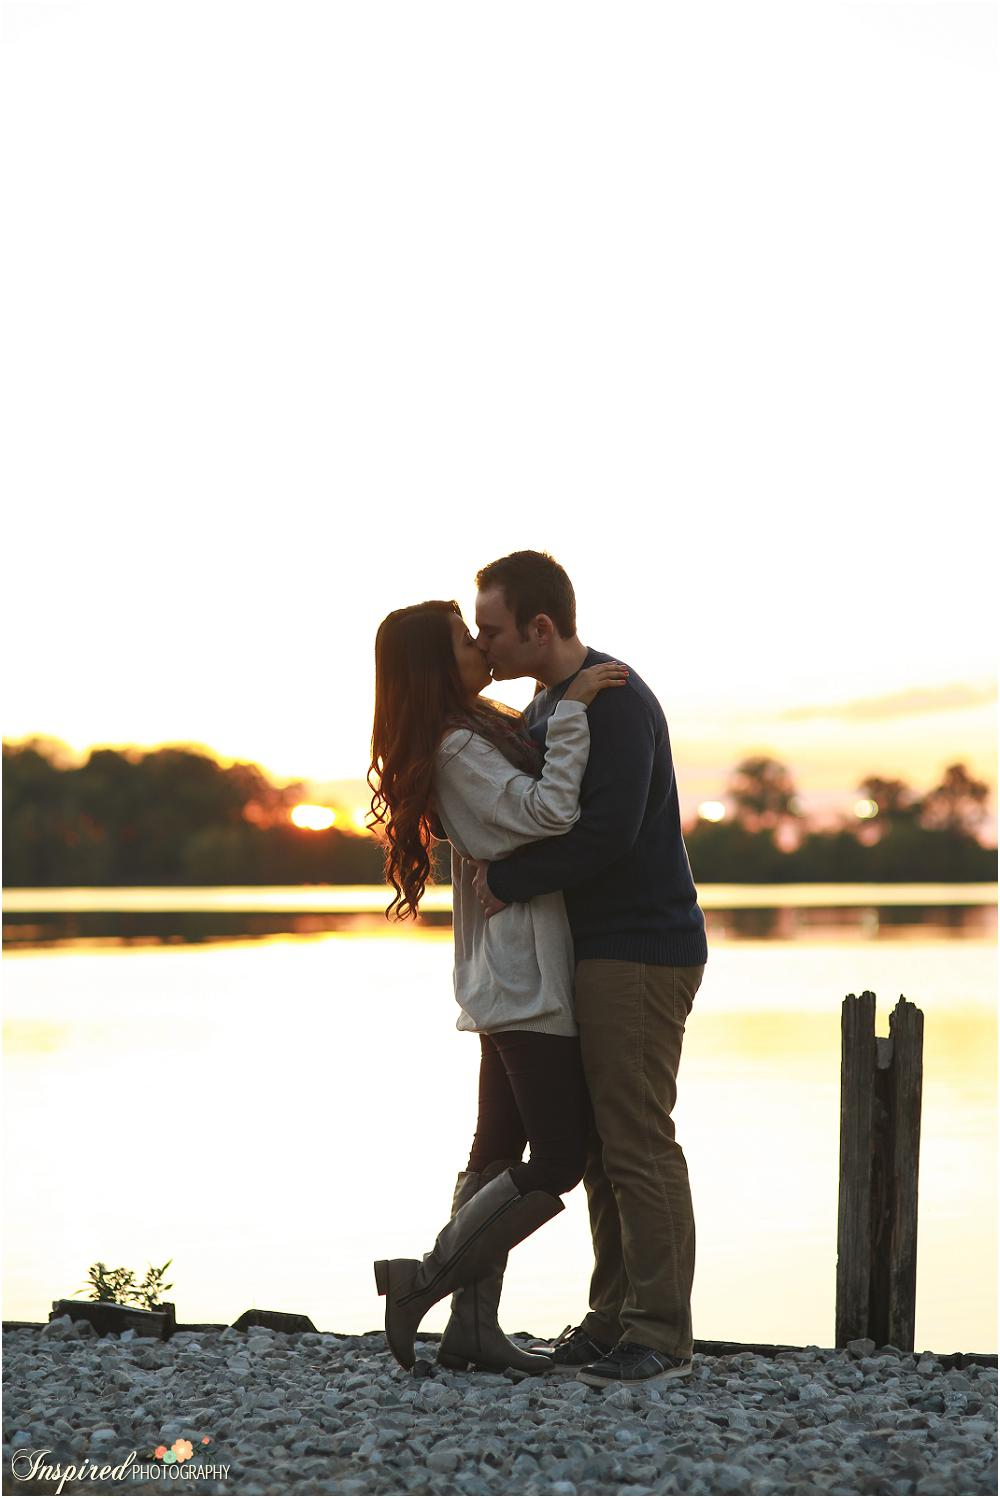 Creve Coeur Lake Sunset Engagement Photography // www.inspiredphotographystl..com